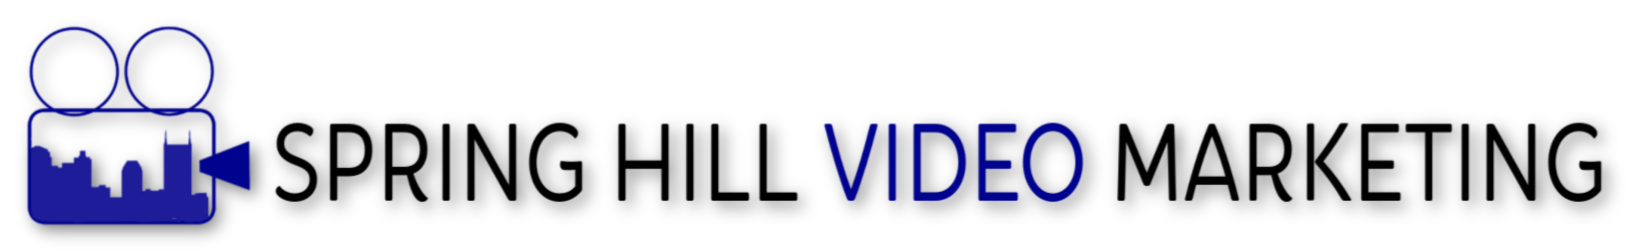 SH Video Marketing Logo.png